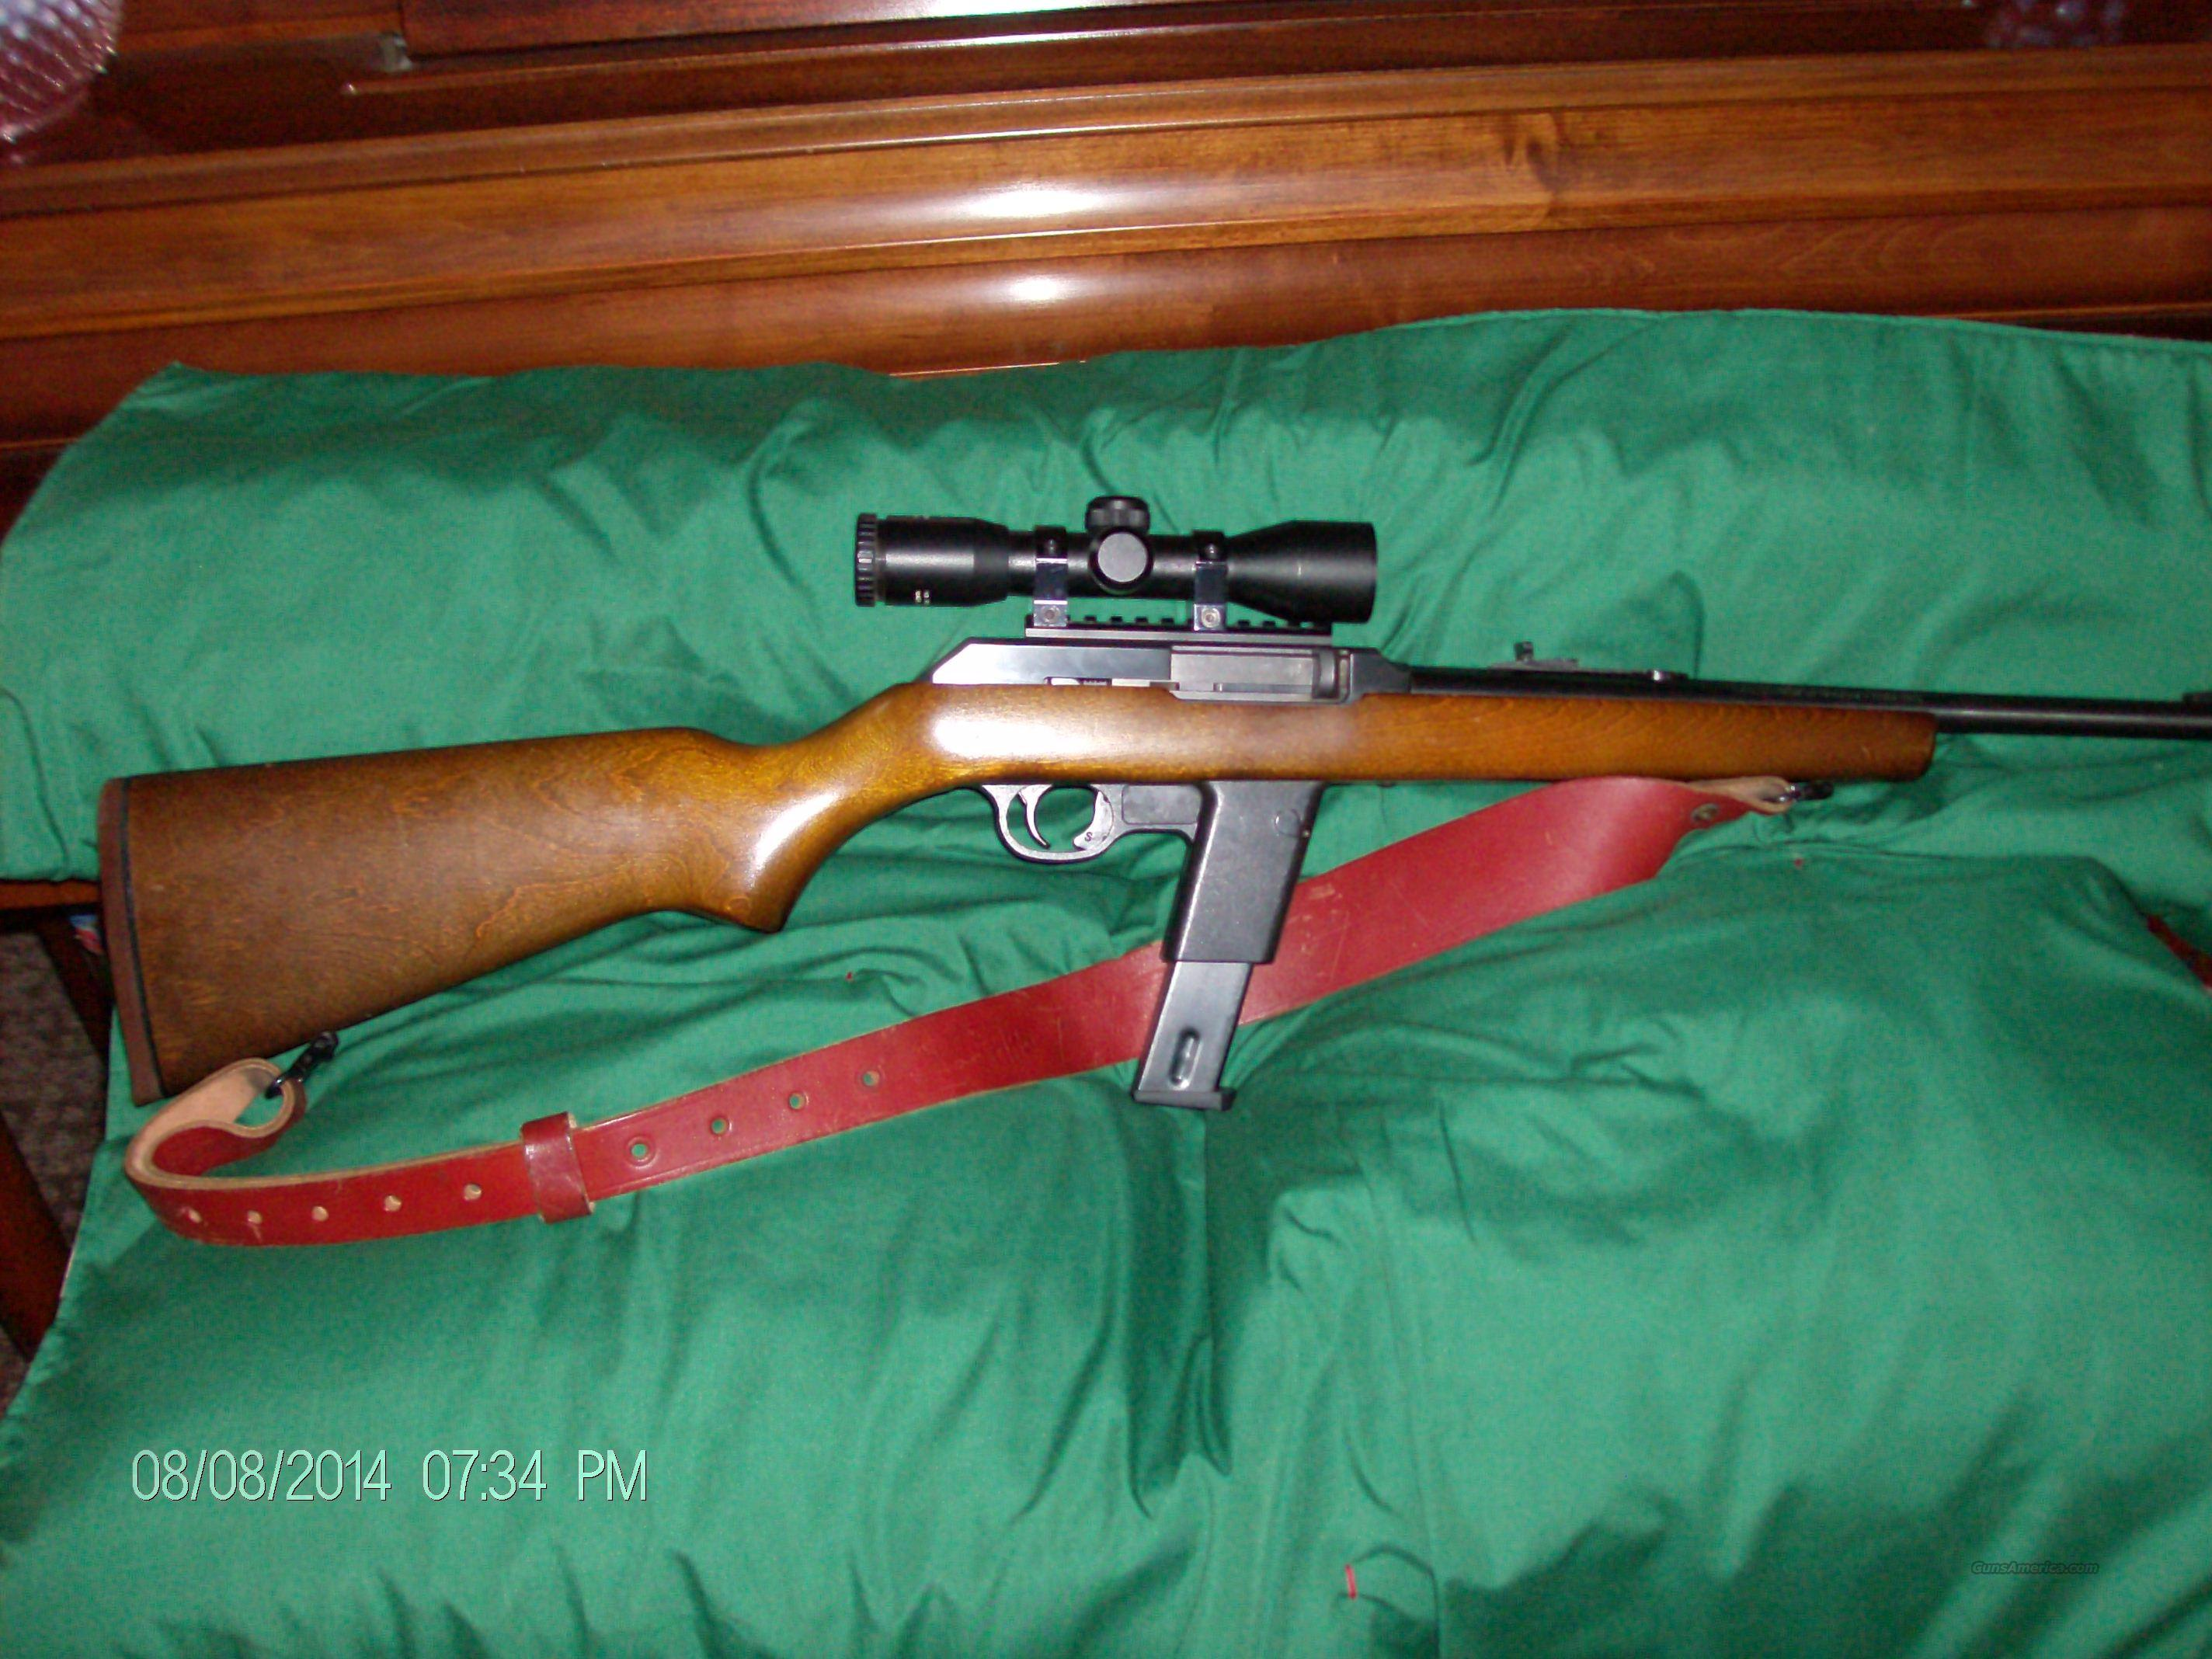 Marlin Model 9 9mm Camp Carbine  Guns > Rifles > Marlin Rifles > Modern > Semi-auto